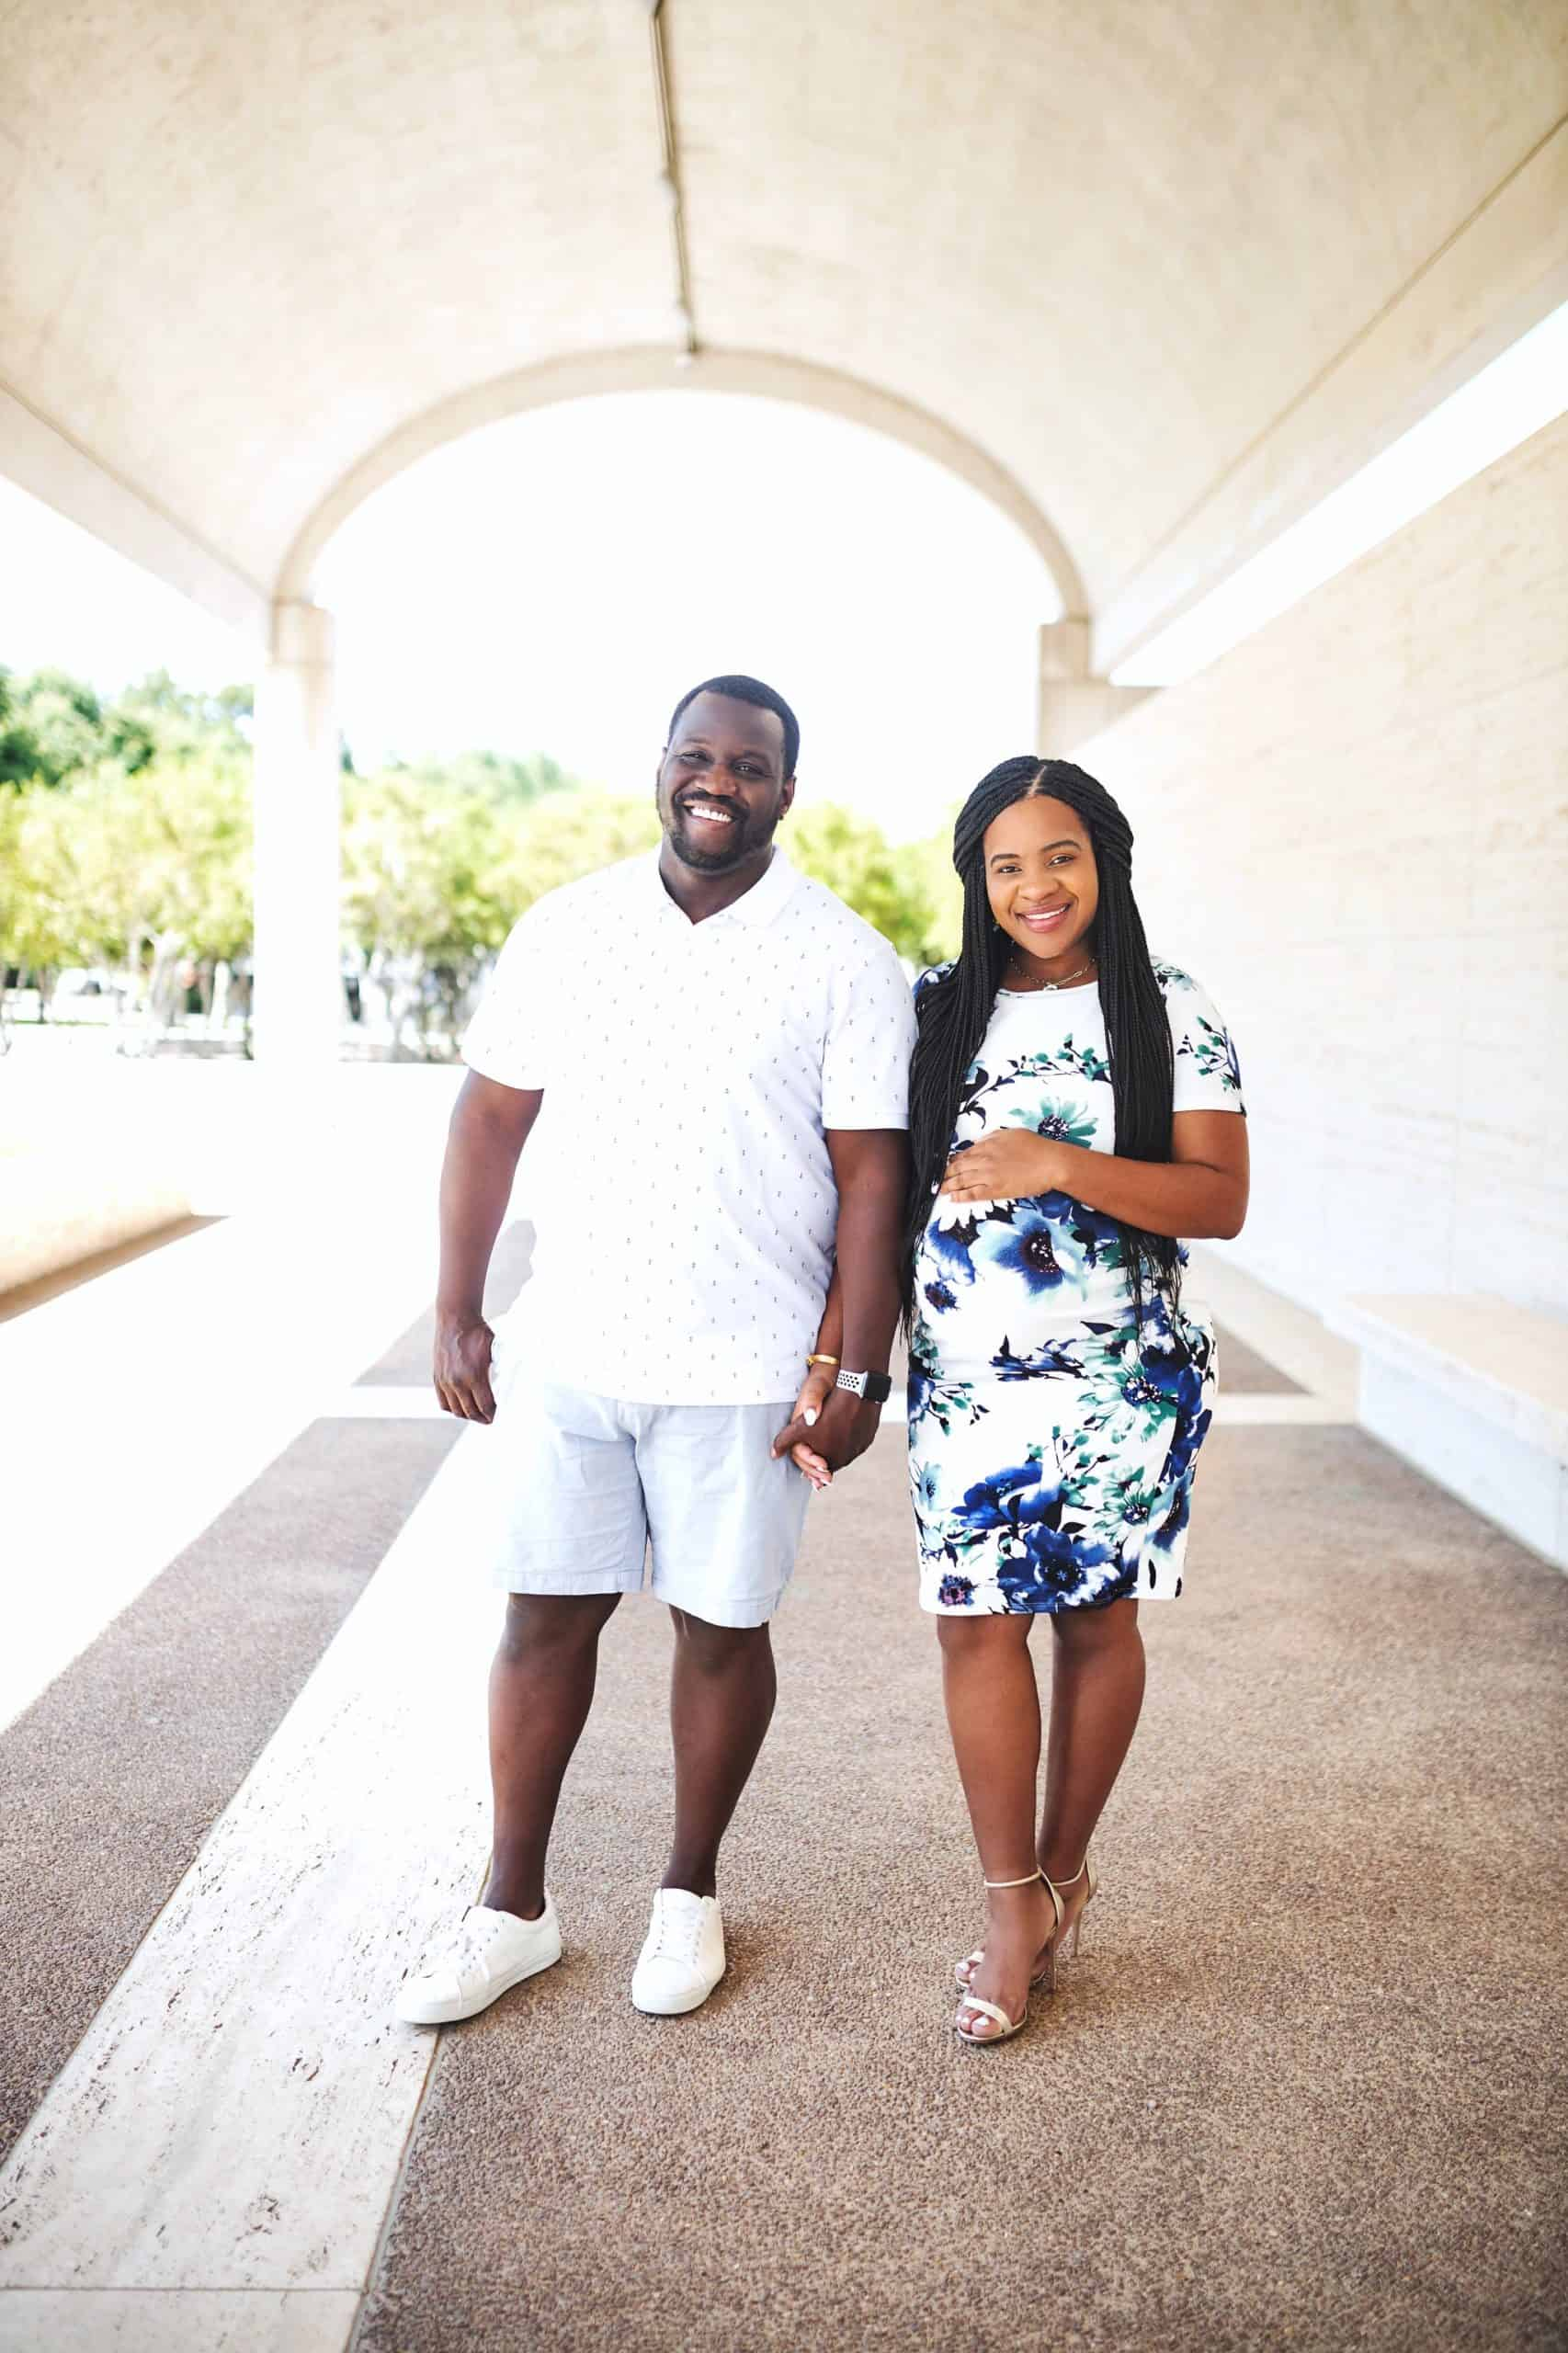 Home Building Tips by popular Dallas lifestyle blog, Glamorous Versatility: image of a husband and pregnant wife standing together and holding hands.